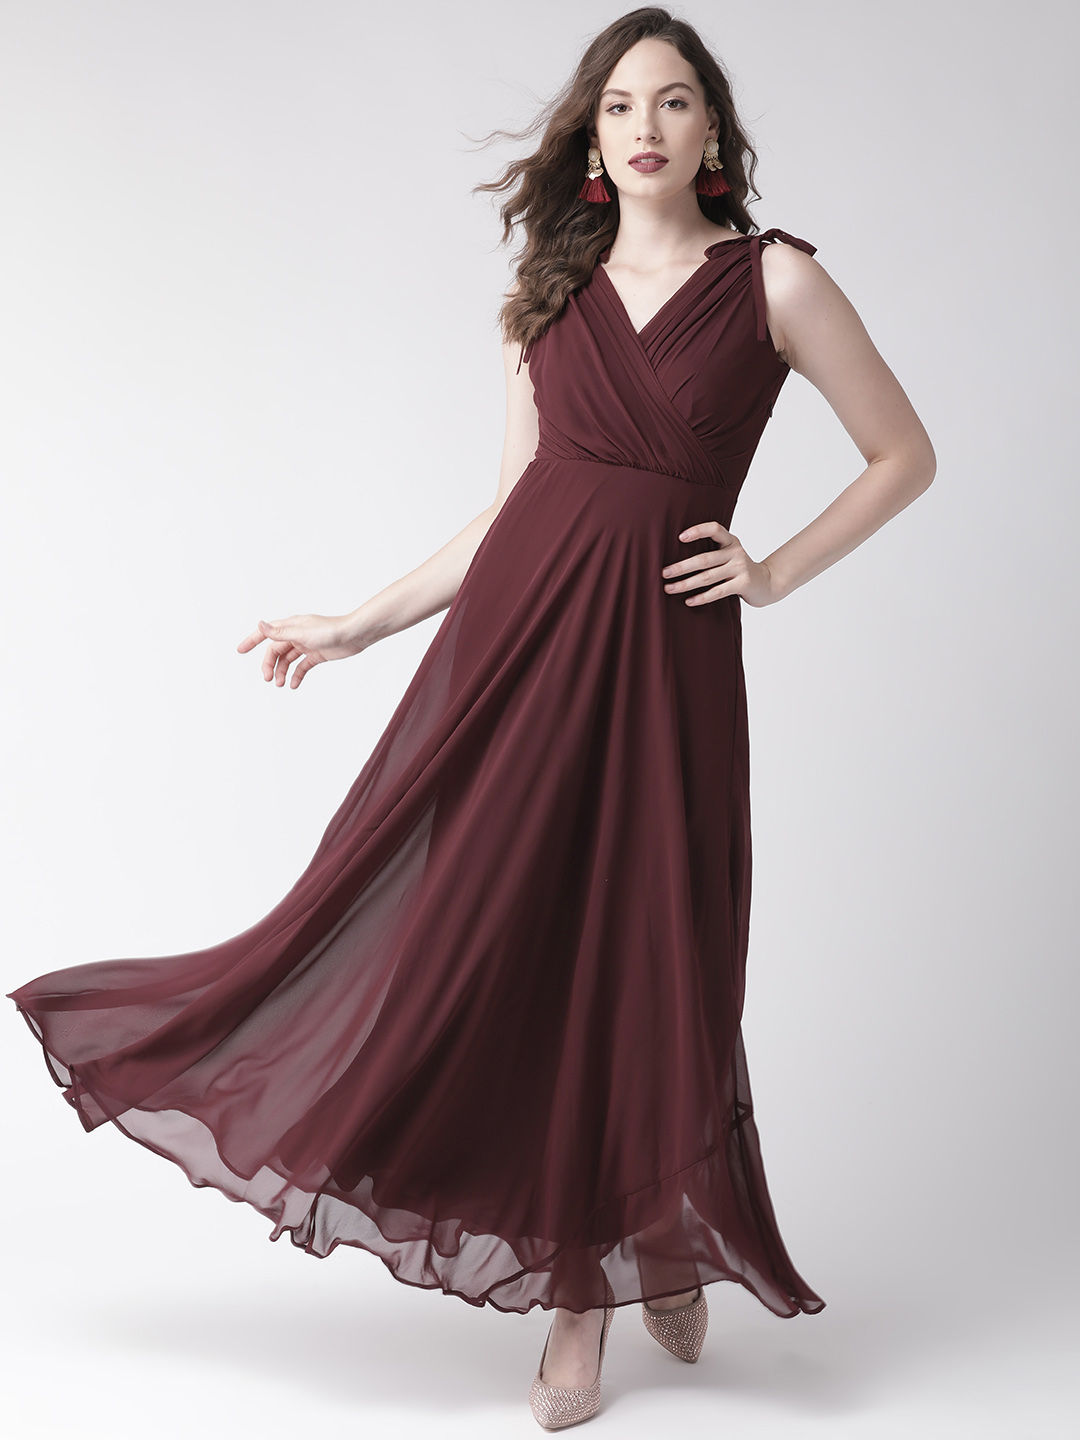 Gowns Online: Buy Fancy Designer Gowns For Women - Upto 8% off